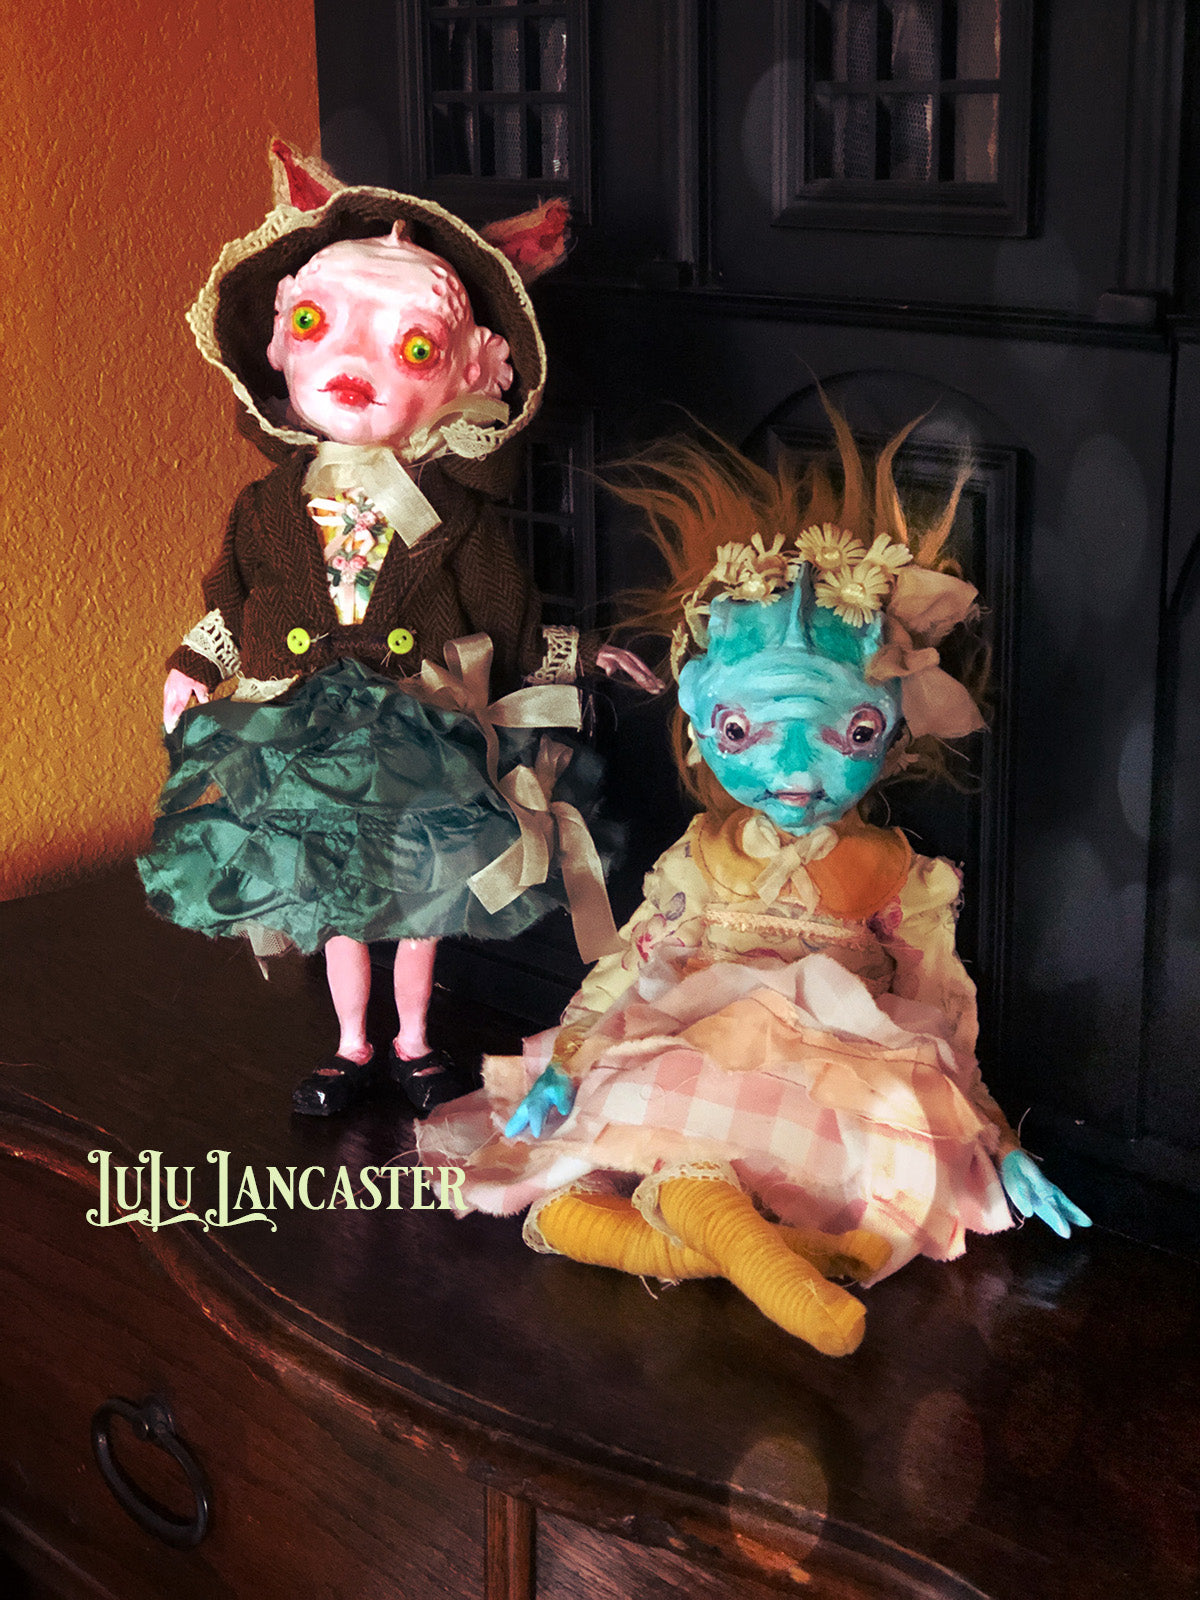 Marley Swamp creature Monster Mashup OOAK Art Doll LuLu Lancaster